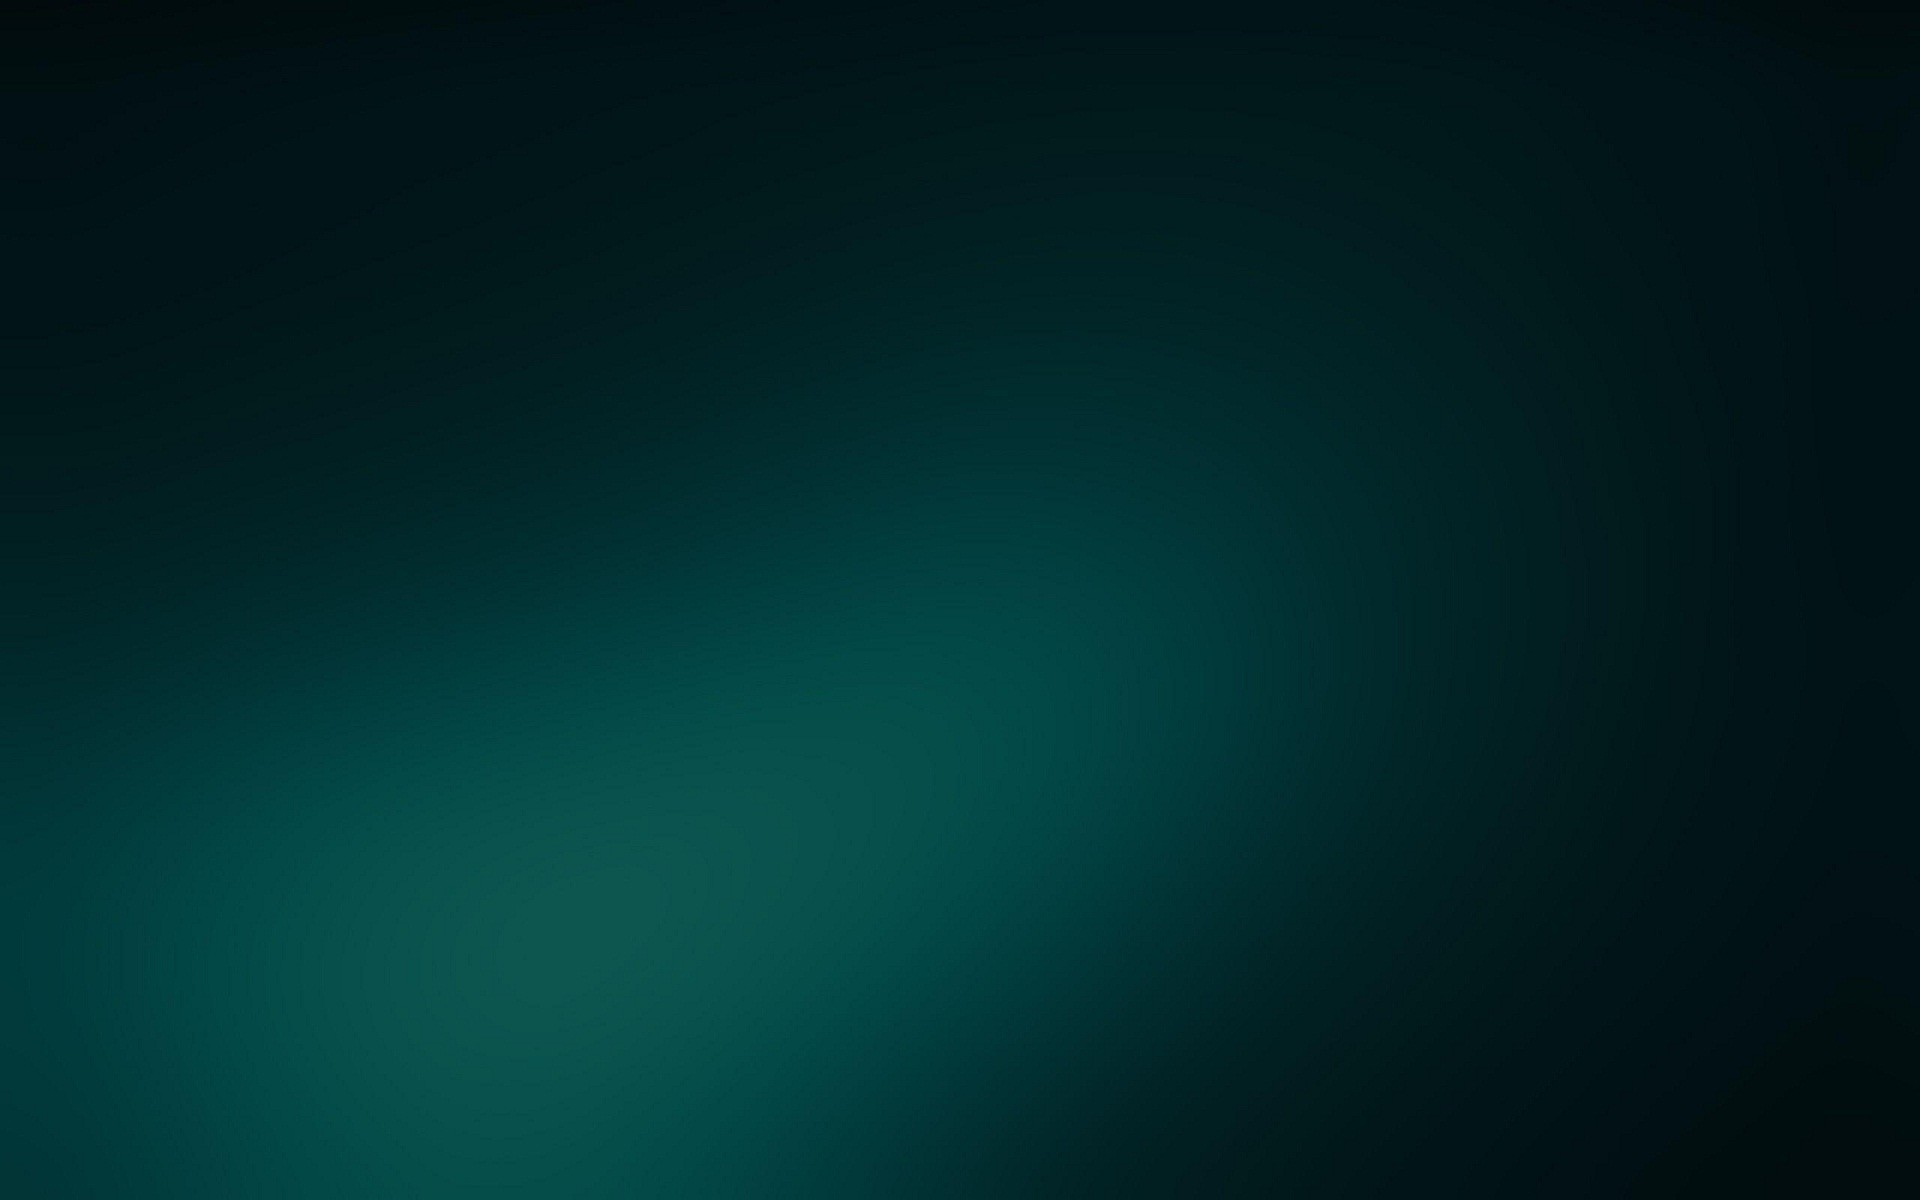 1920x1200 dark-green-shine-plain-full-hd-wide-wallpapers